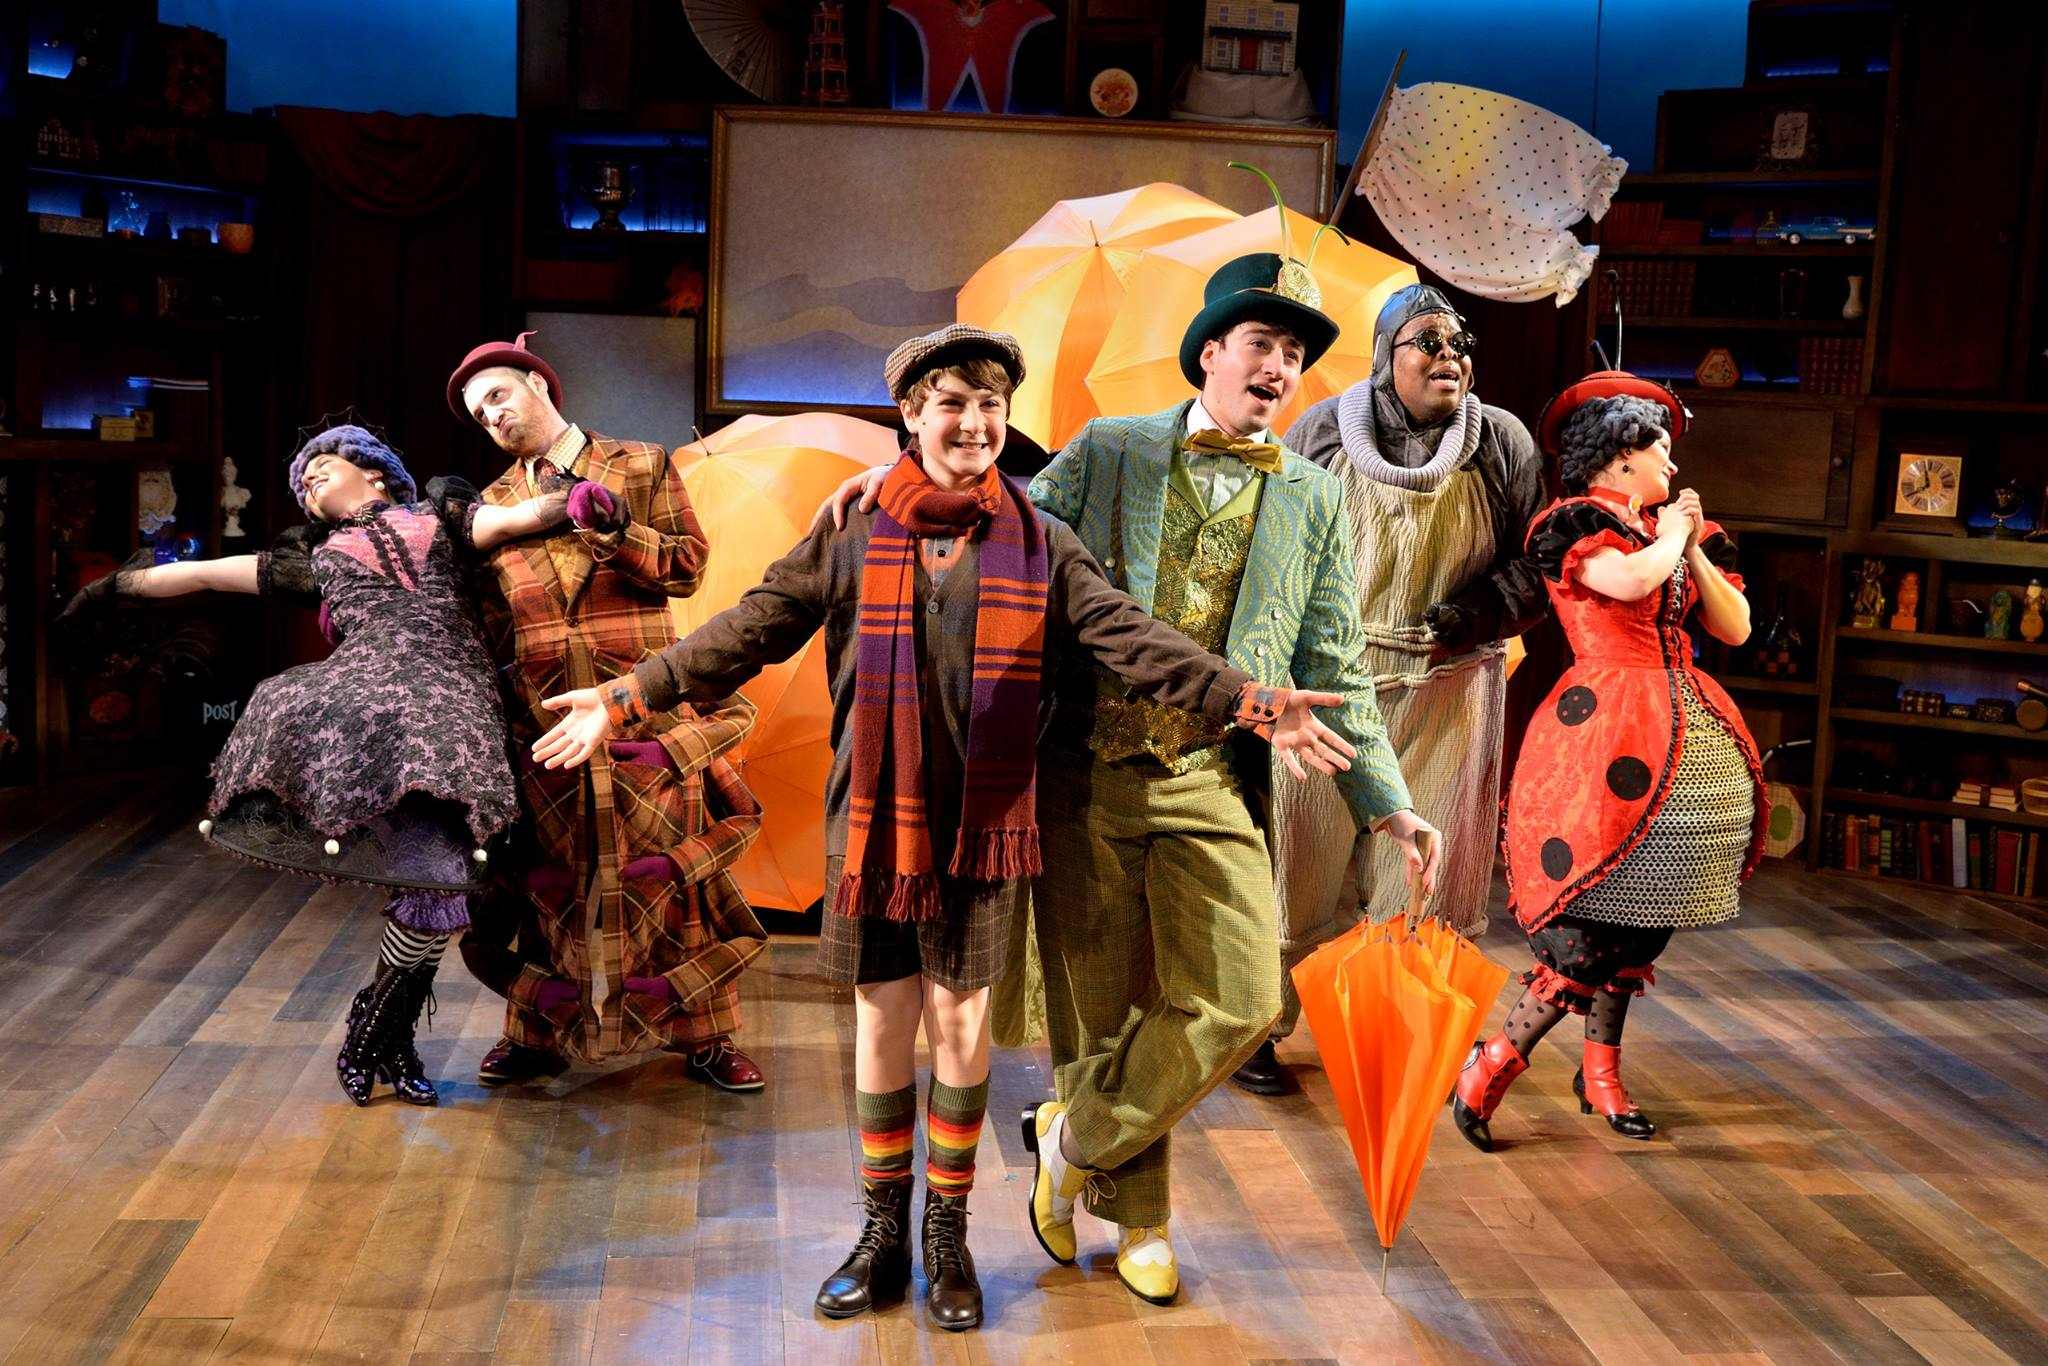 Floatin' Along in James and the Giant Peach at Adventure Theatre MTC. Directed by Michael Baron, Costumes by Jeffrey Meek, Scenic Design by Katie Sullivan